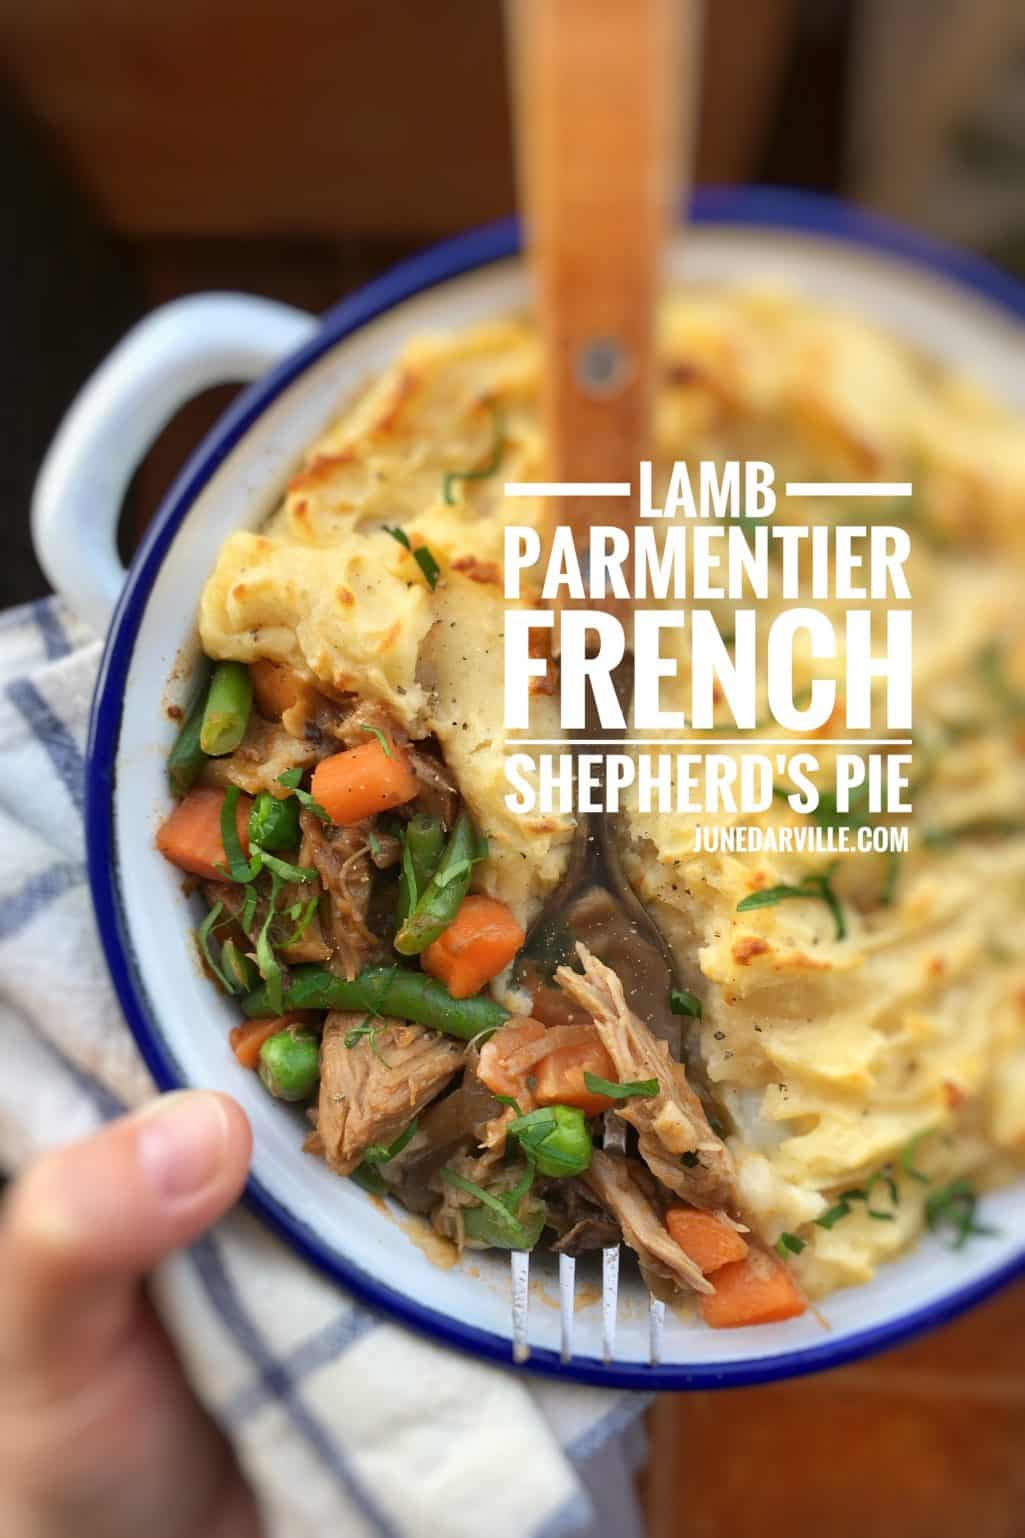 Get creative with leftovers! I turned last night's lamb shoulder into a hearty lamb parmentier for dinner: a French shepherd's pie!